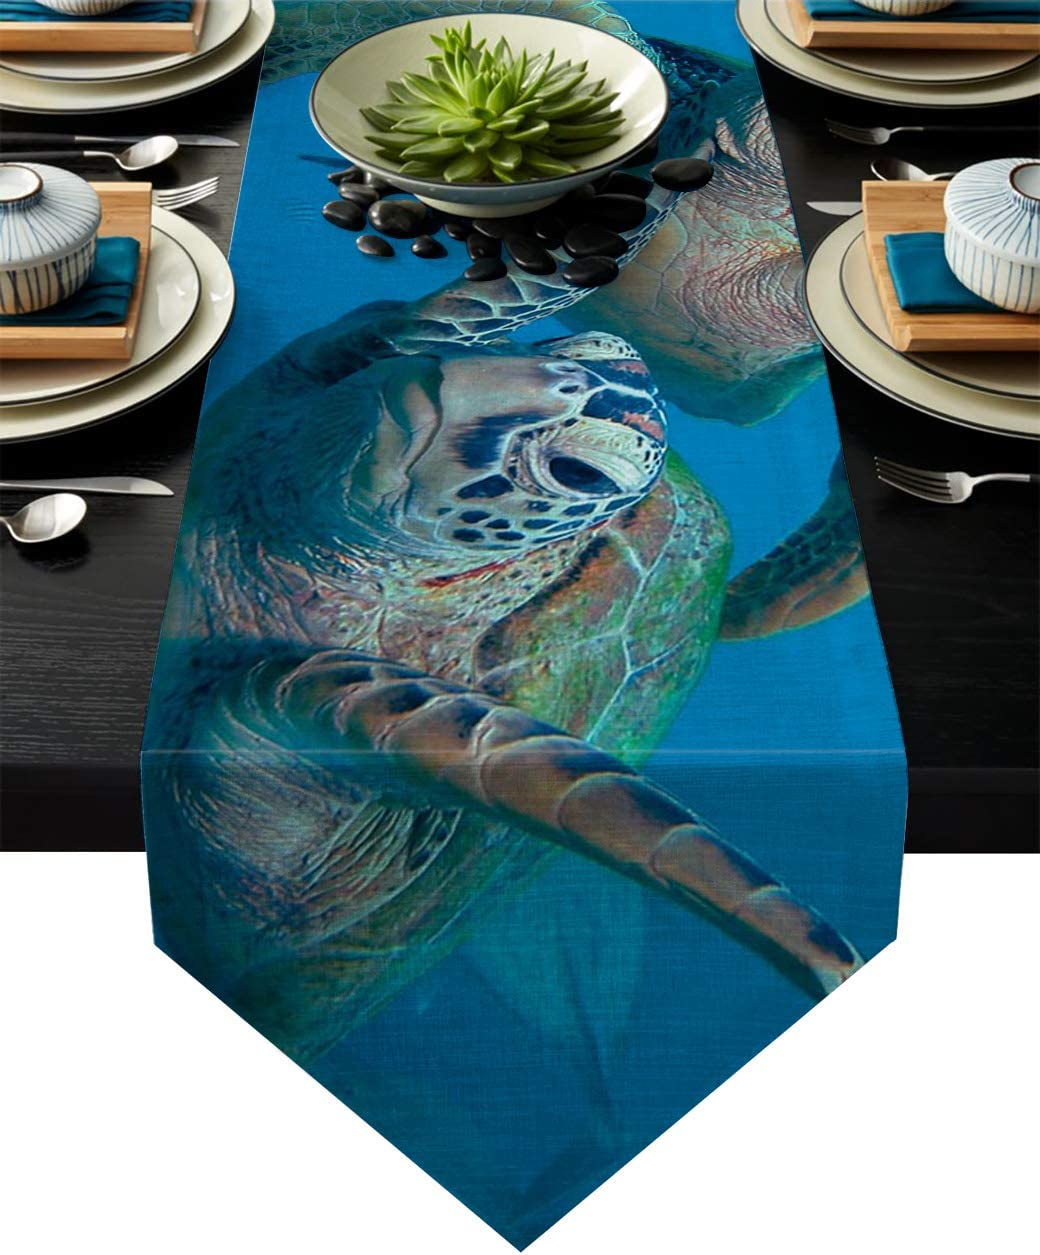 Blue Cotton Linen Table Runner Ocean Animal Sea Turtle 13x70 Inch Burlap Table Runners for Party Wedding Dining Farmhouse Outdoor Picnics Table Top Decor